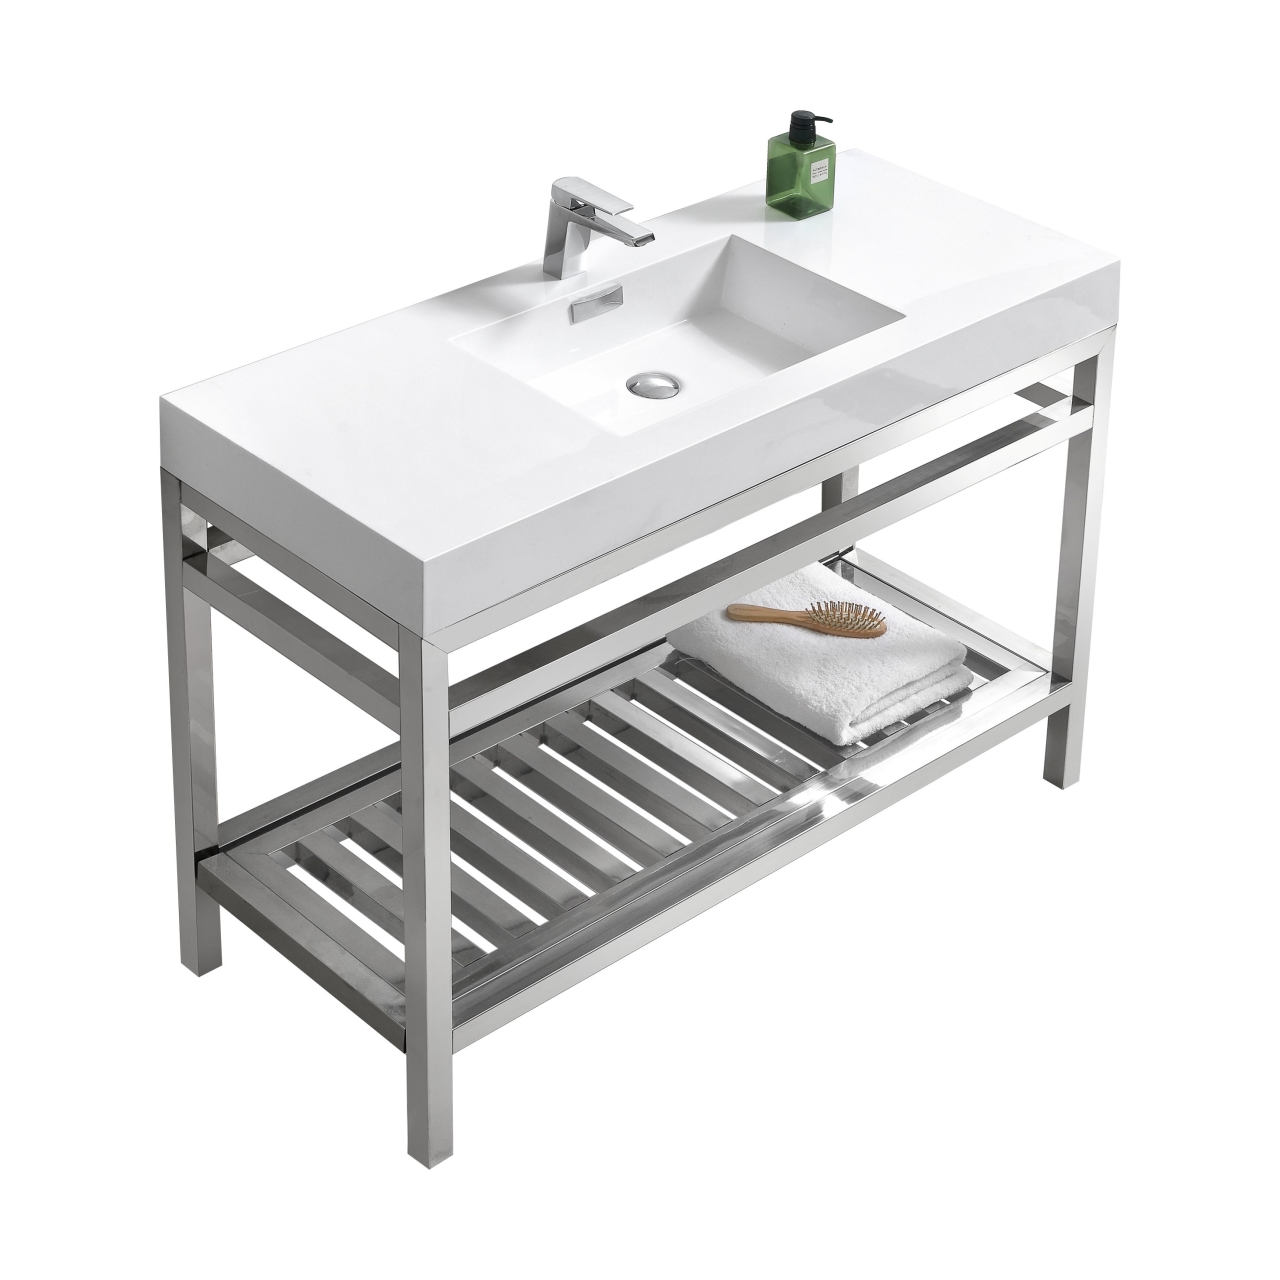 Cisco 48 Quot Stainless Steel Console W White Acrylic Sink